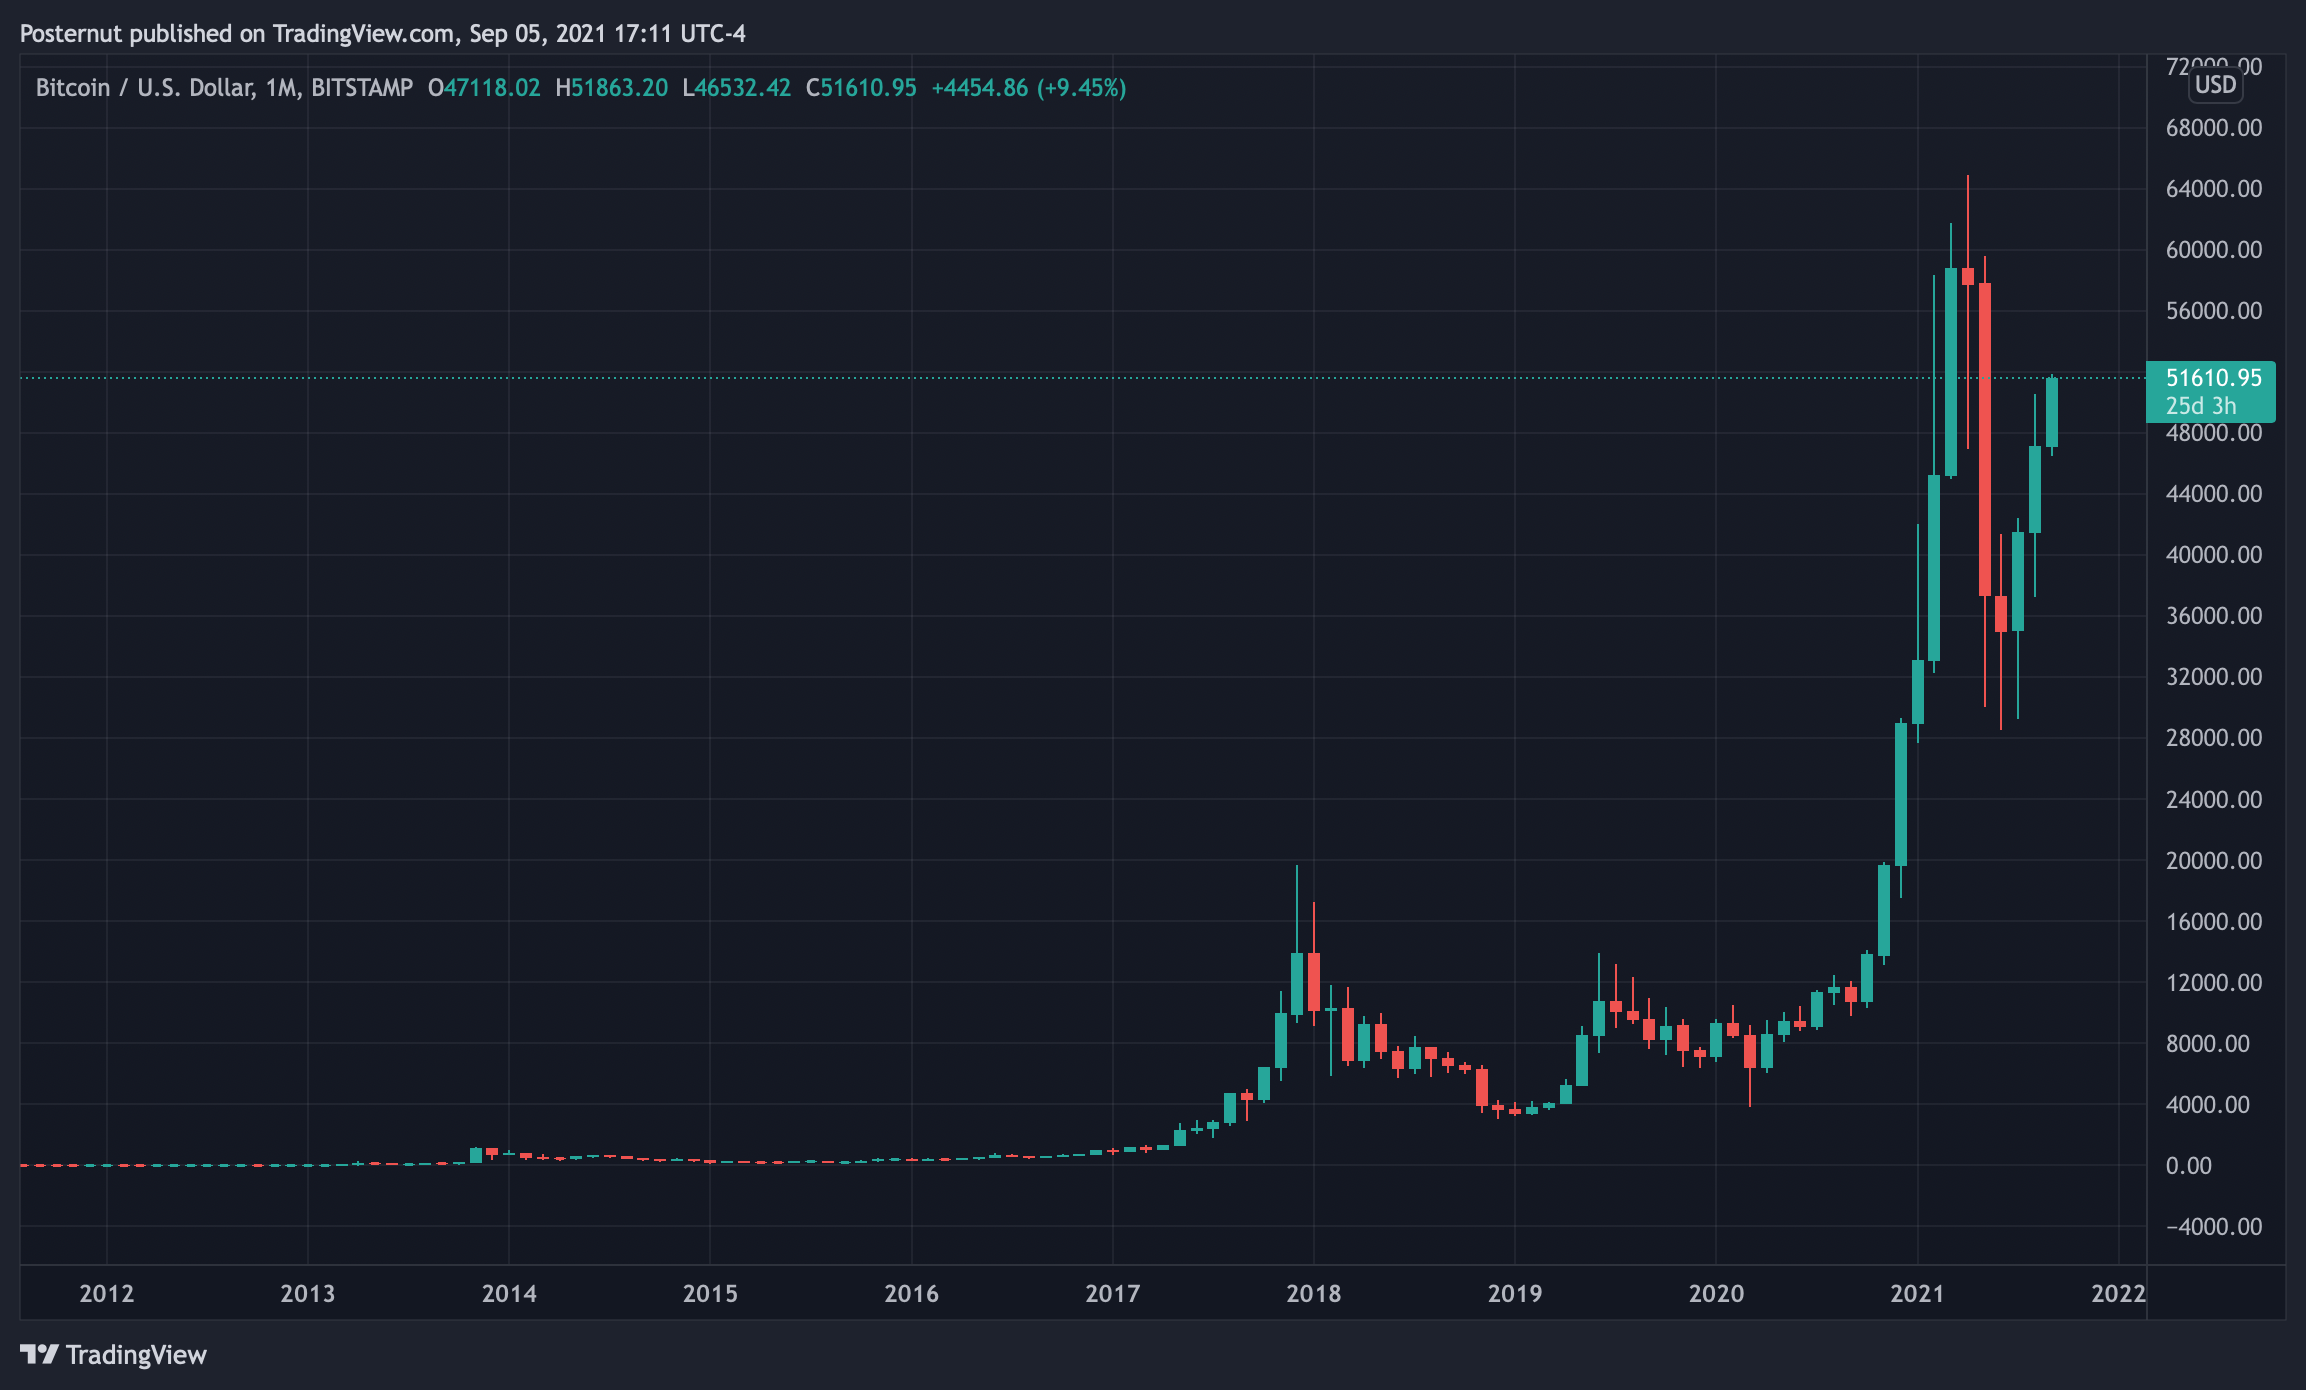 Can Bitcoin Break Historical September Price Trends? Spike Above $51K Suggests 2021's 9th Month Is Different